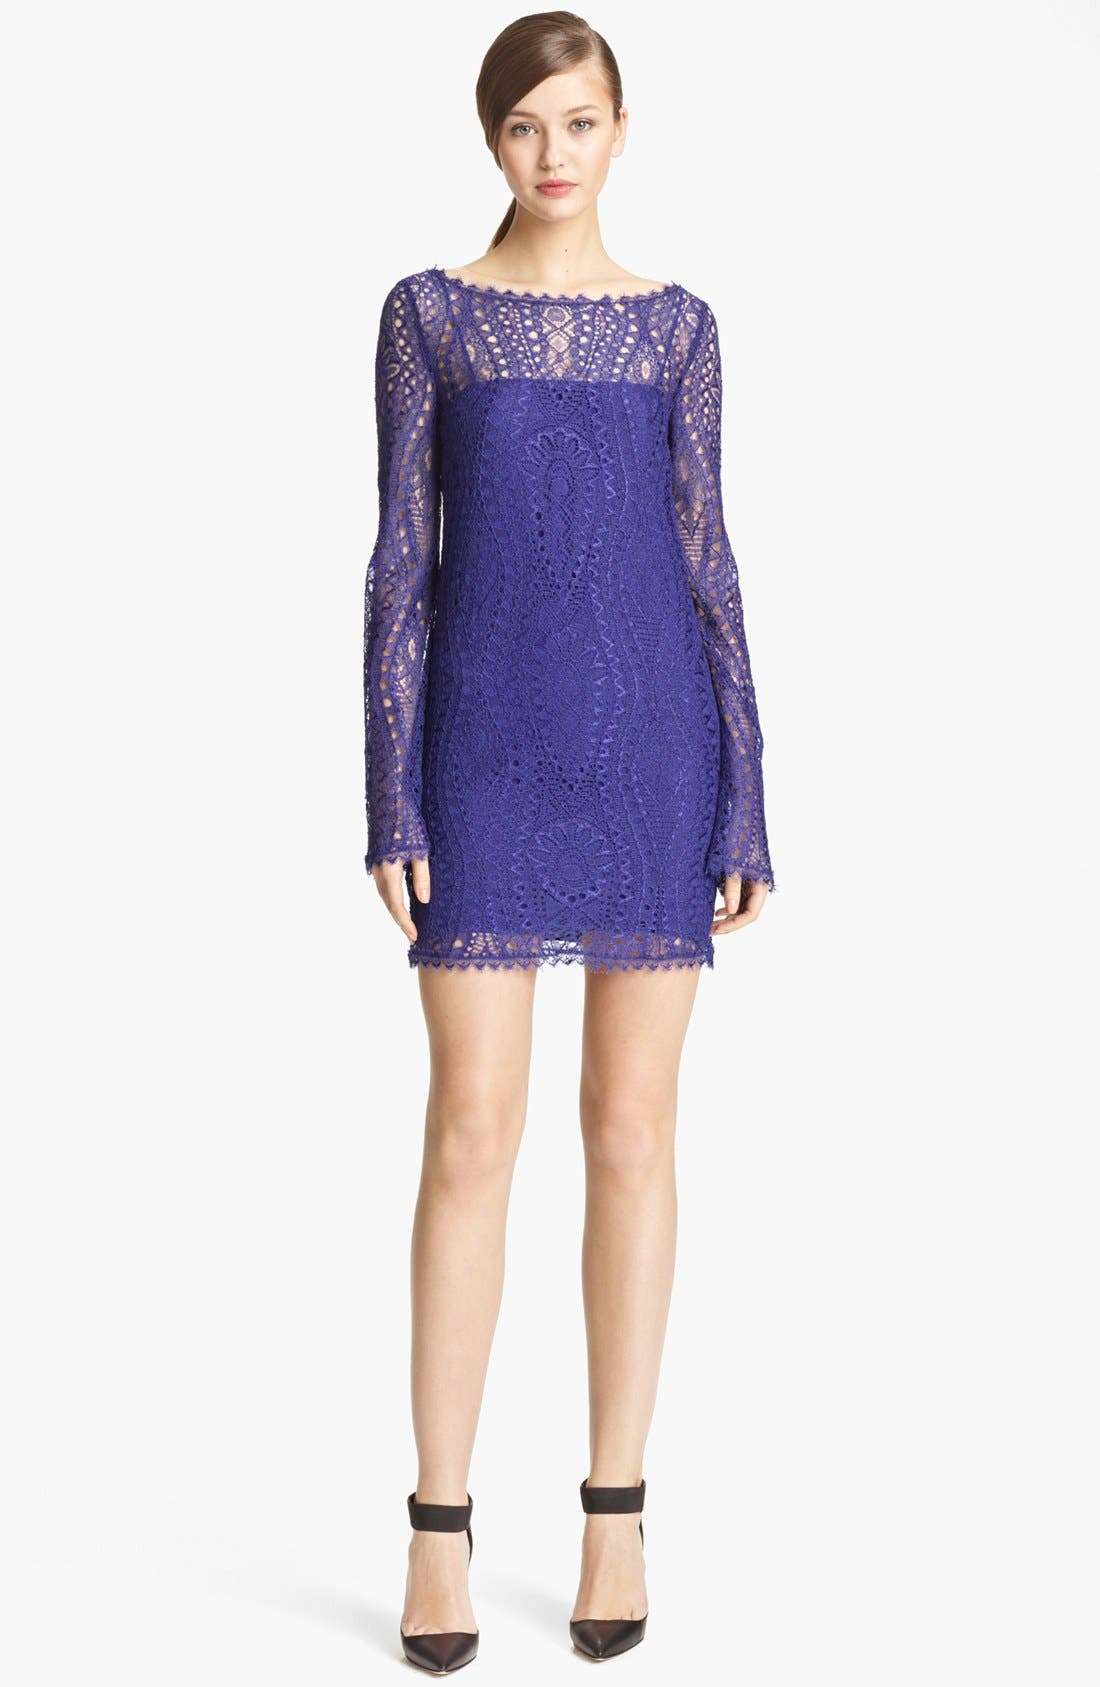 Main Image - Emilio Pucci Guipure Lace Dress